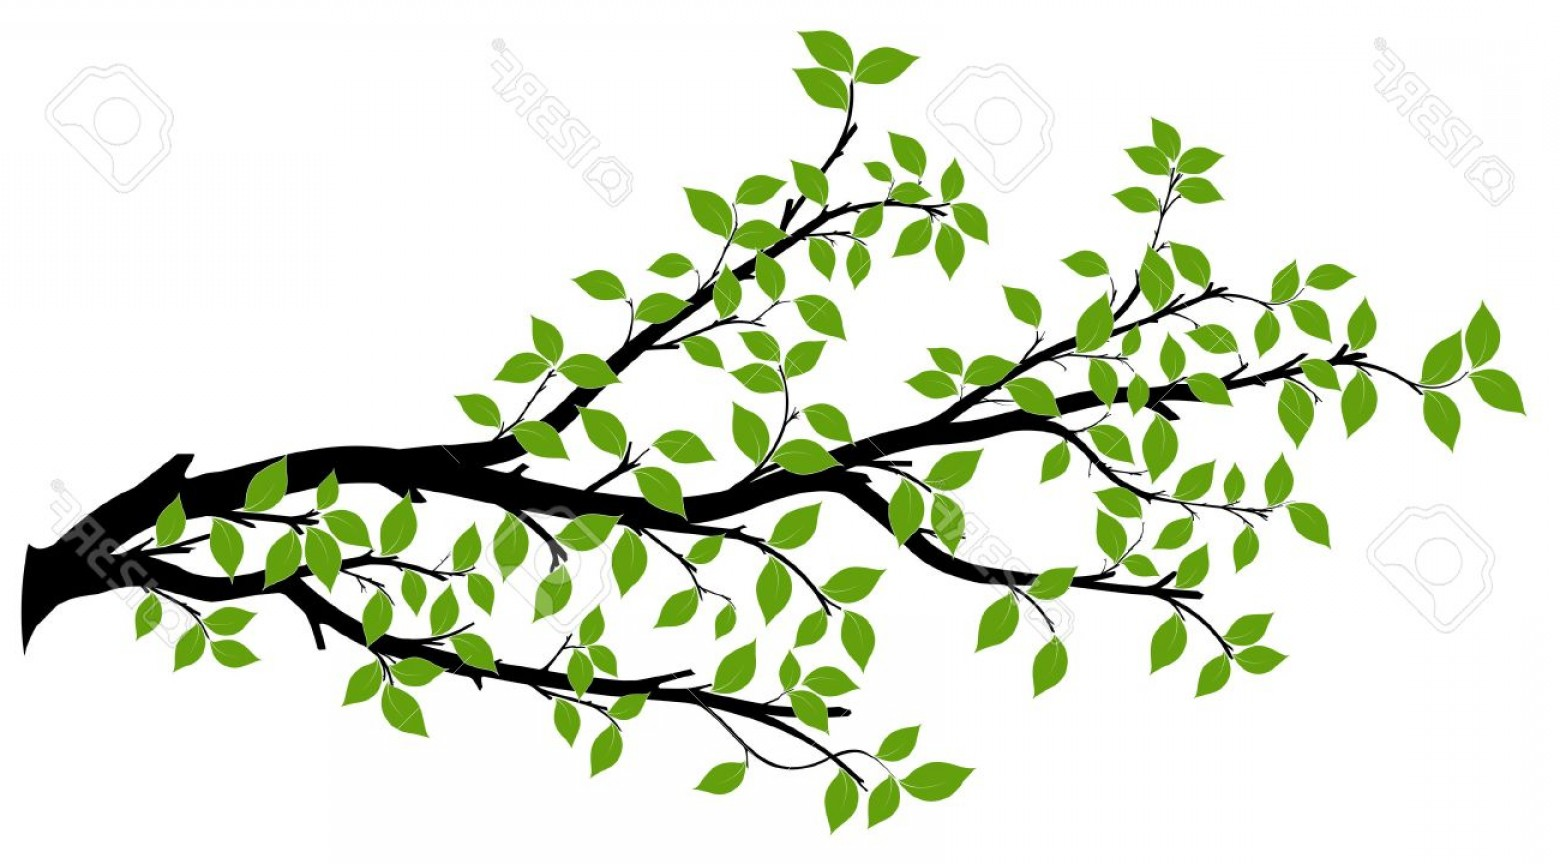 Tree Branch Vector Background: Photostock Vector Tree Branch With Green Leaves Over White Background Vector Graphics Artwork Design Element